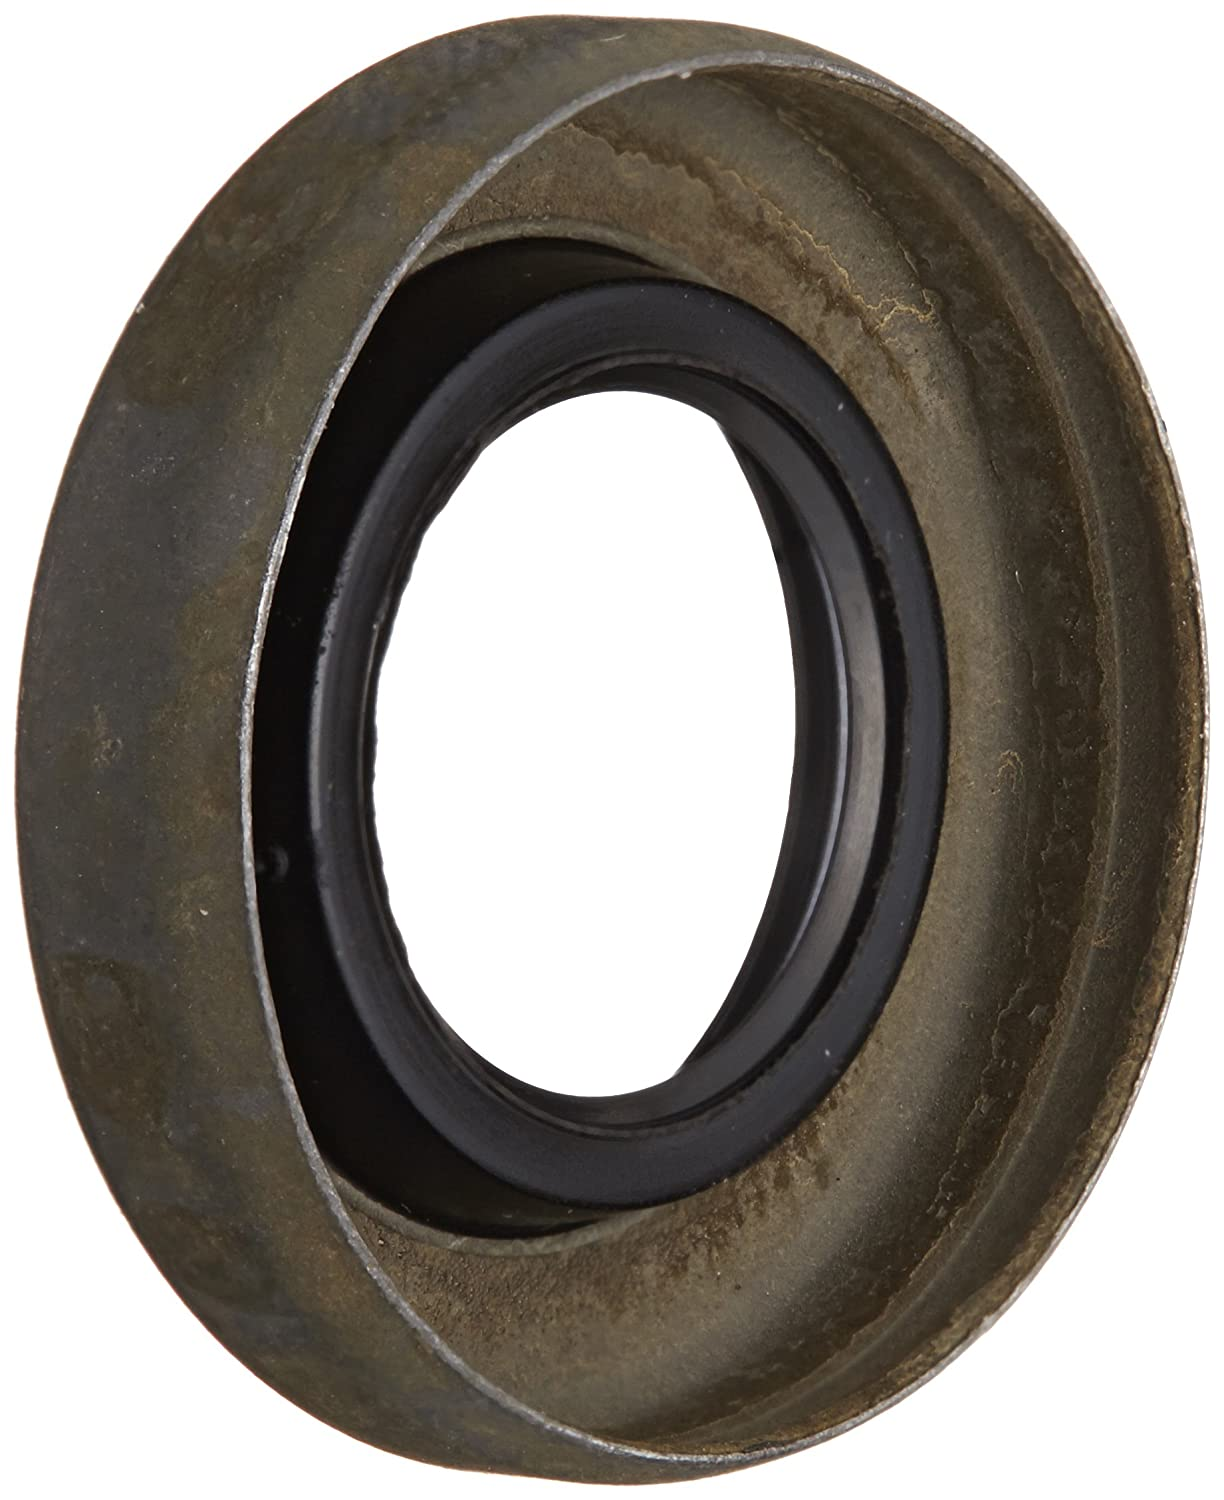 SKF 4231 Max 73% OFF LDS Small Bore Seal R Lip Style Inch Code Branded goods HM14 0.